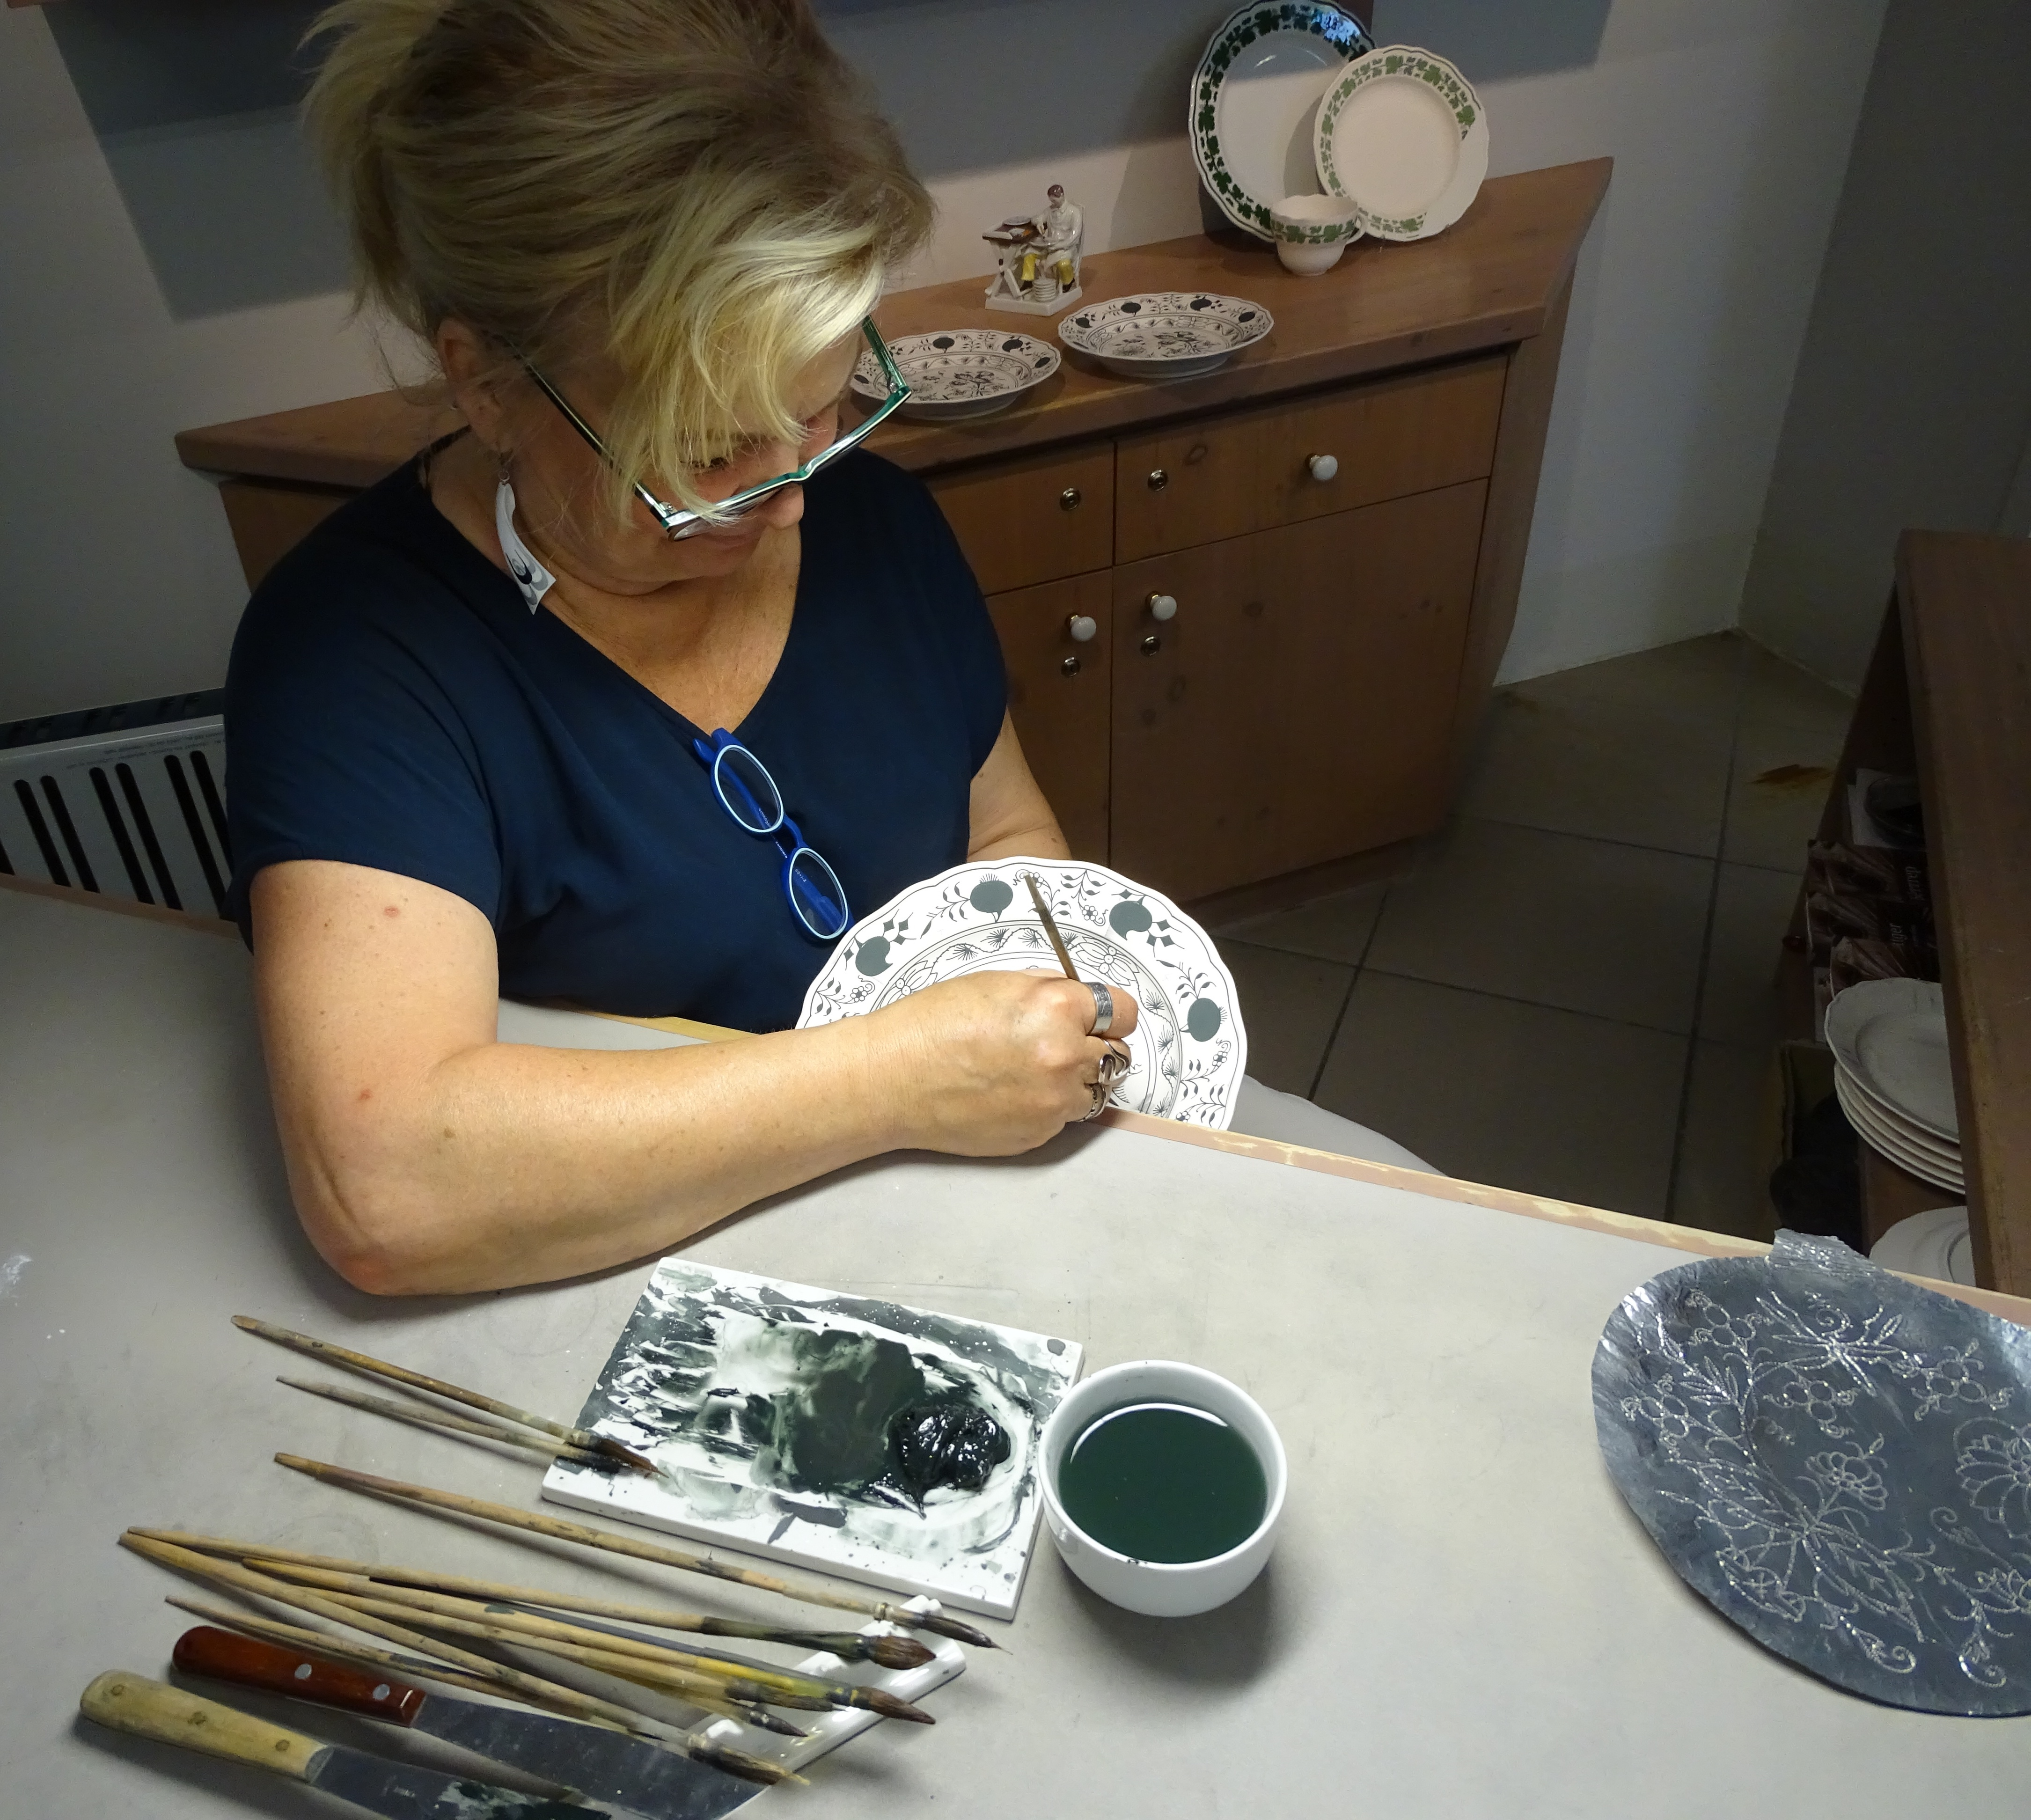 hand-painting demonstration Meissen Porcelain Manufactory